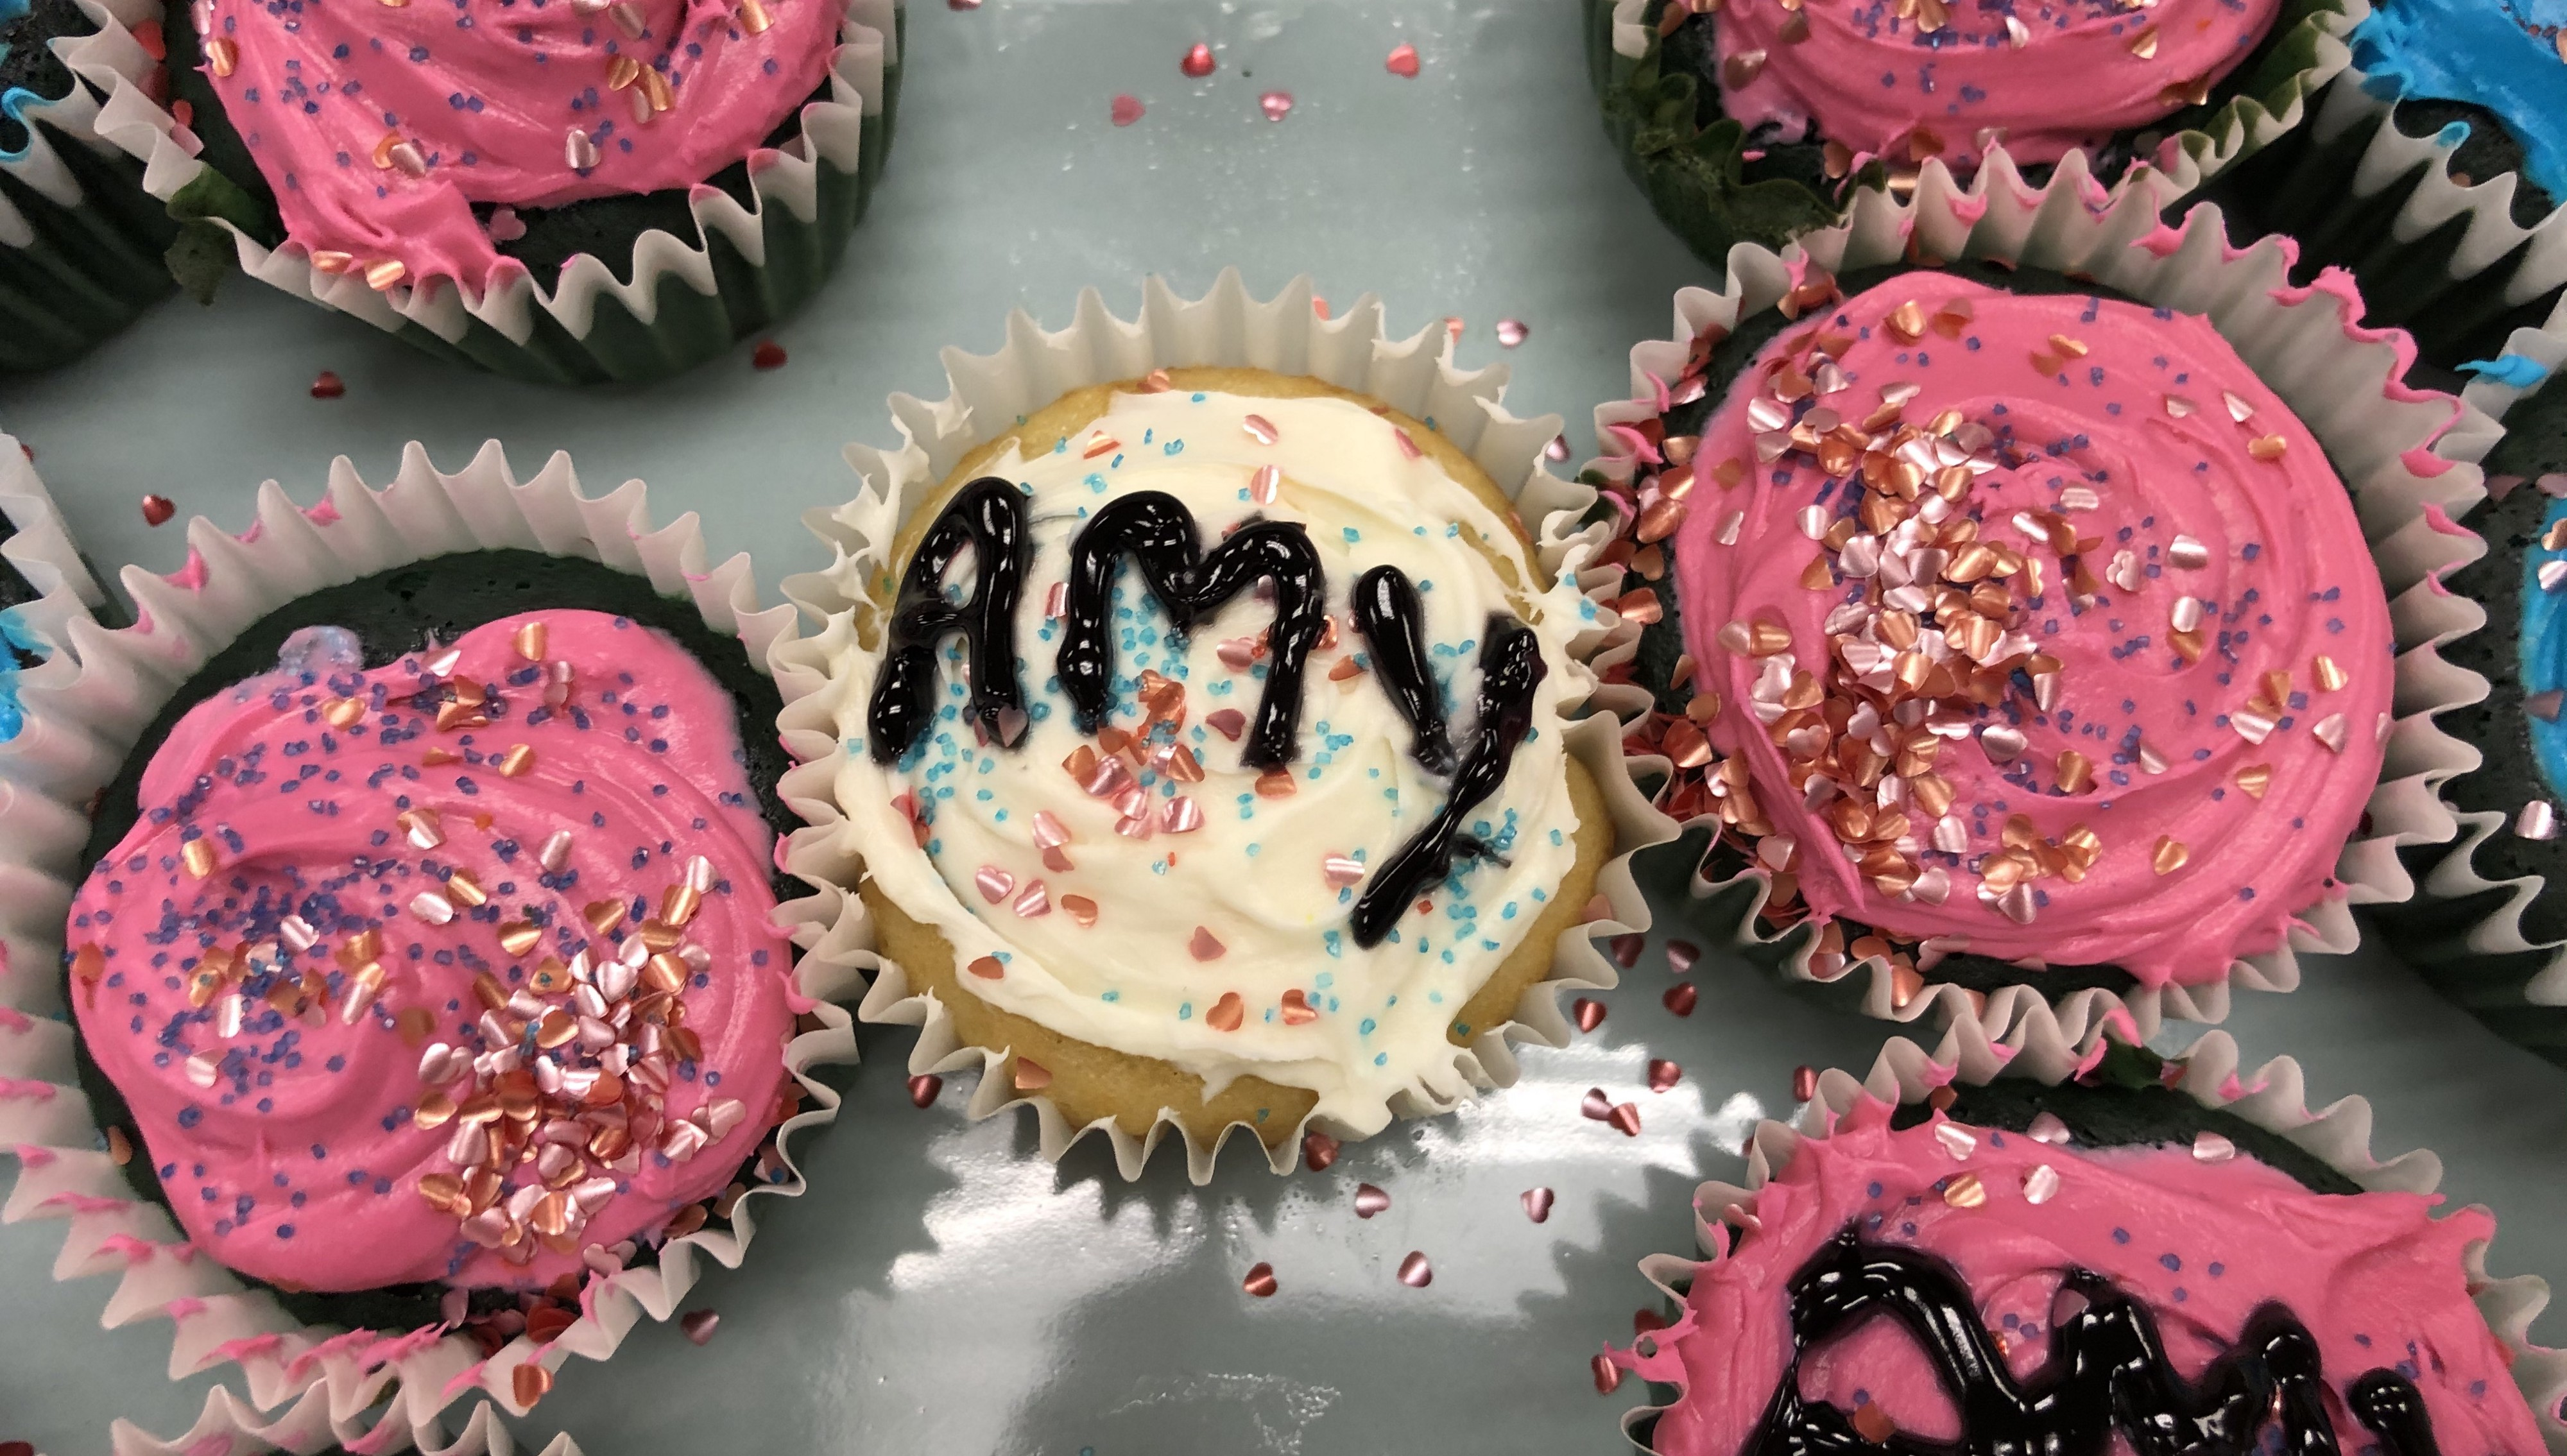 A photograph of a frosted cupcake with the name Amy on it.